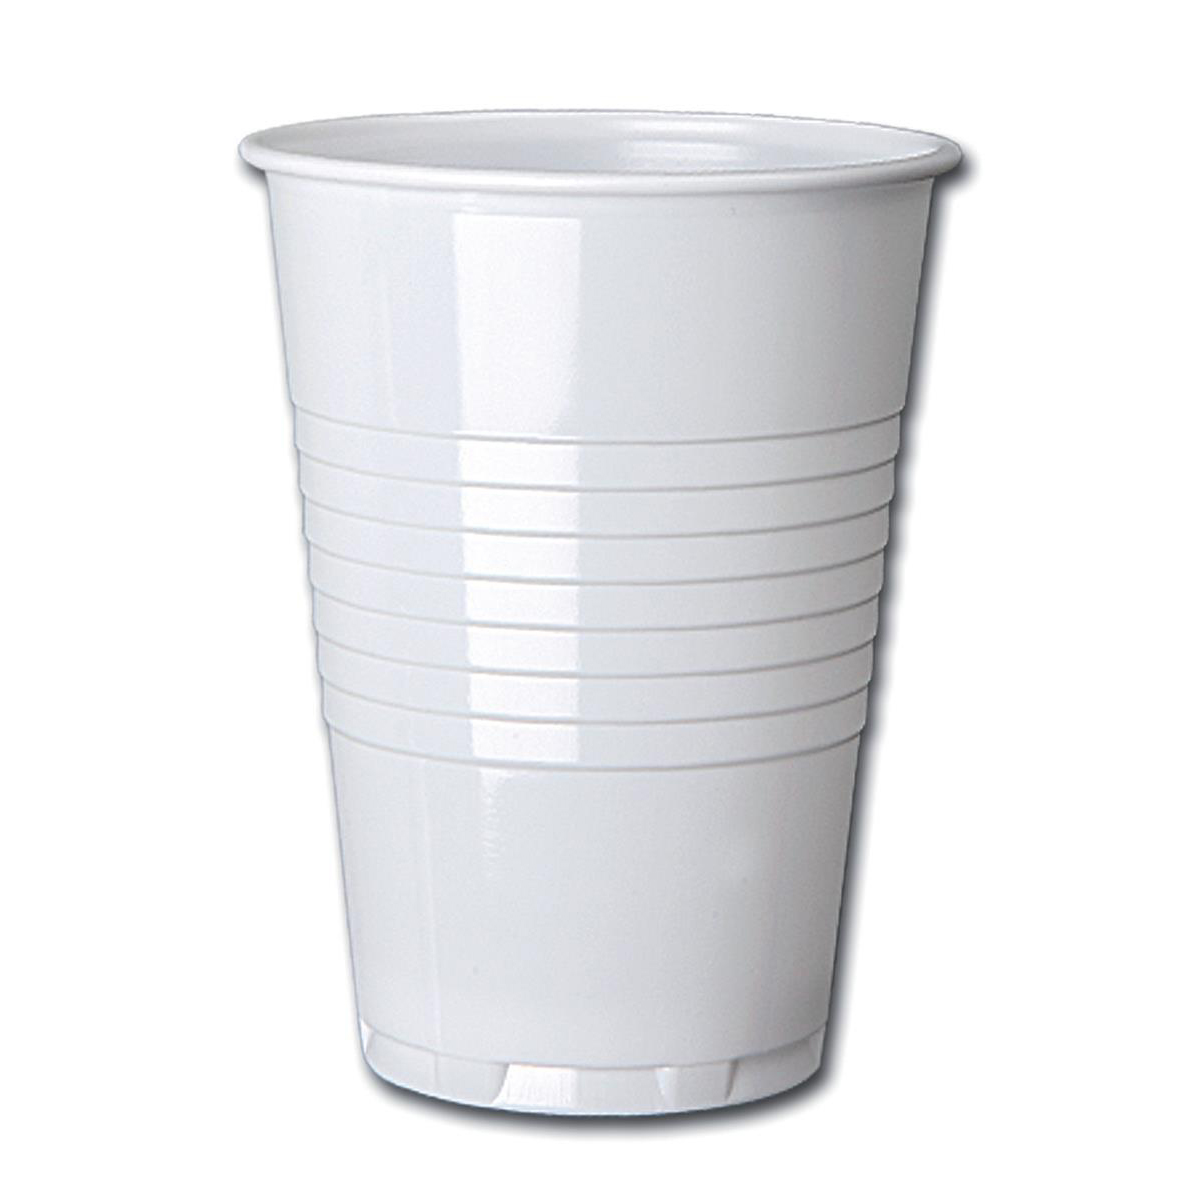 Disposable Cups & Accessories Cup for Hot Drinks Plastic for Vending Machine 7oz 207ml Tall Pack 100